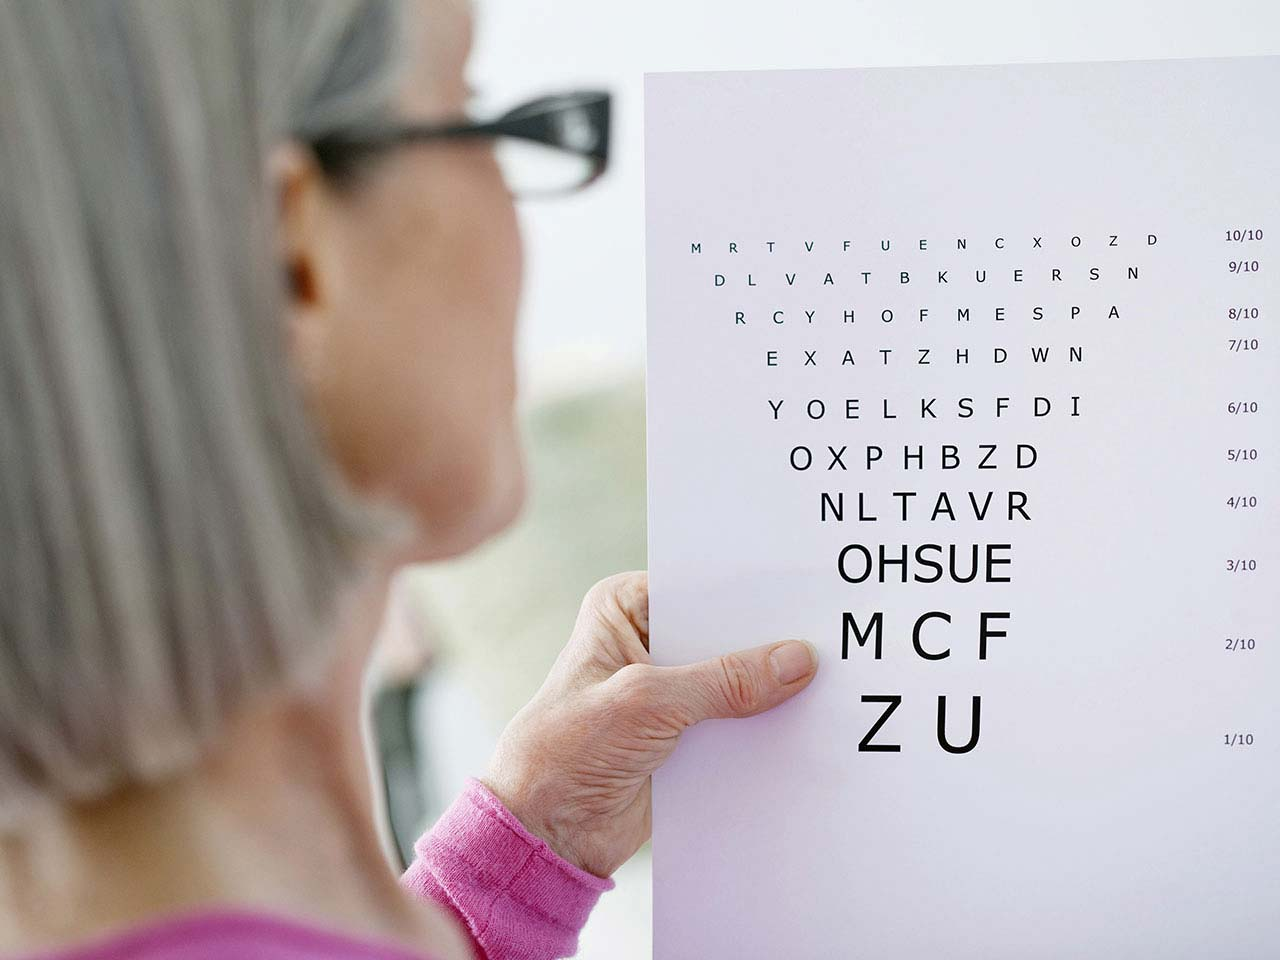 Mature lady looking at an eye exam chart